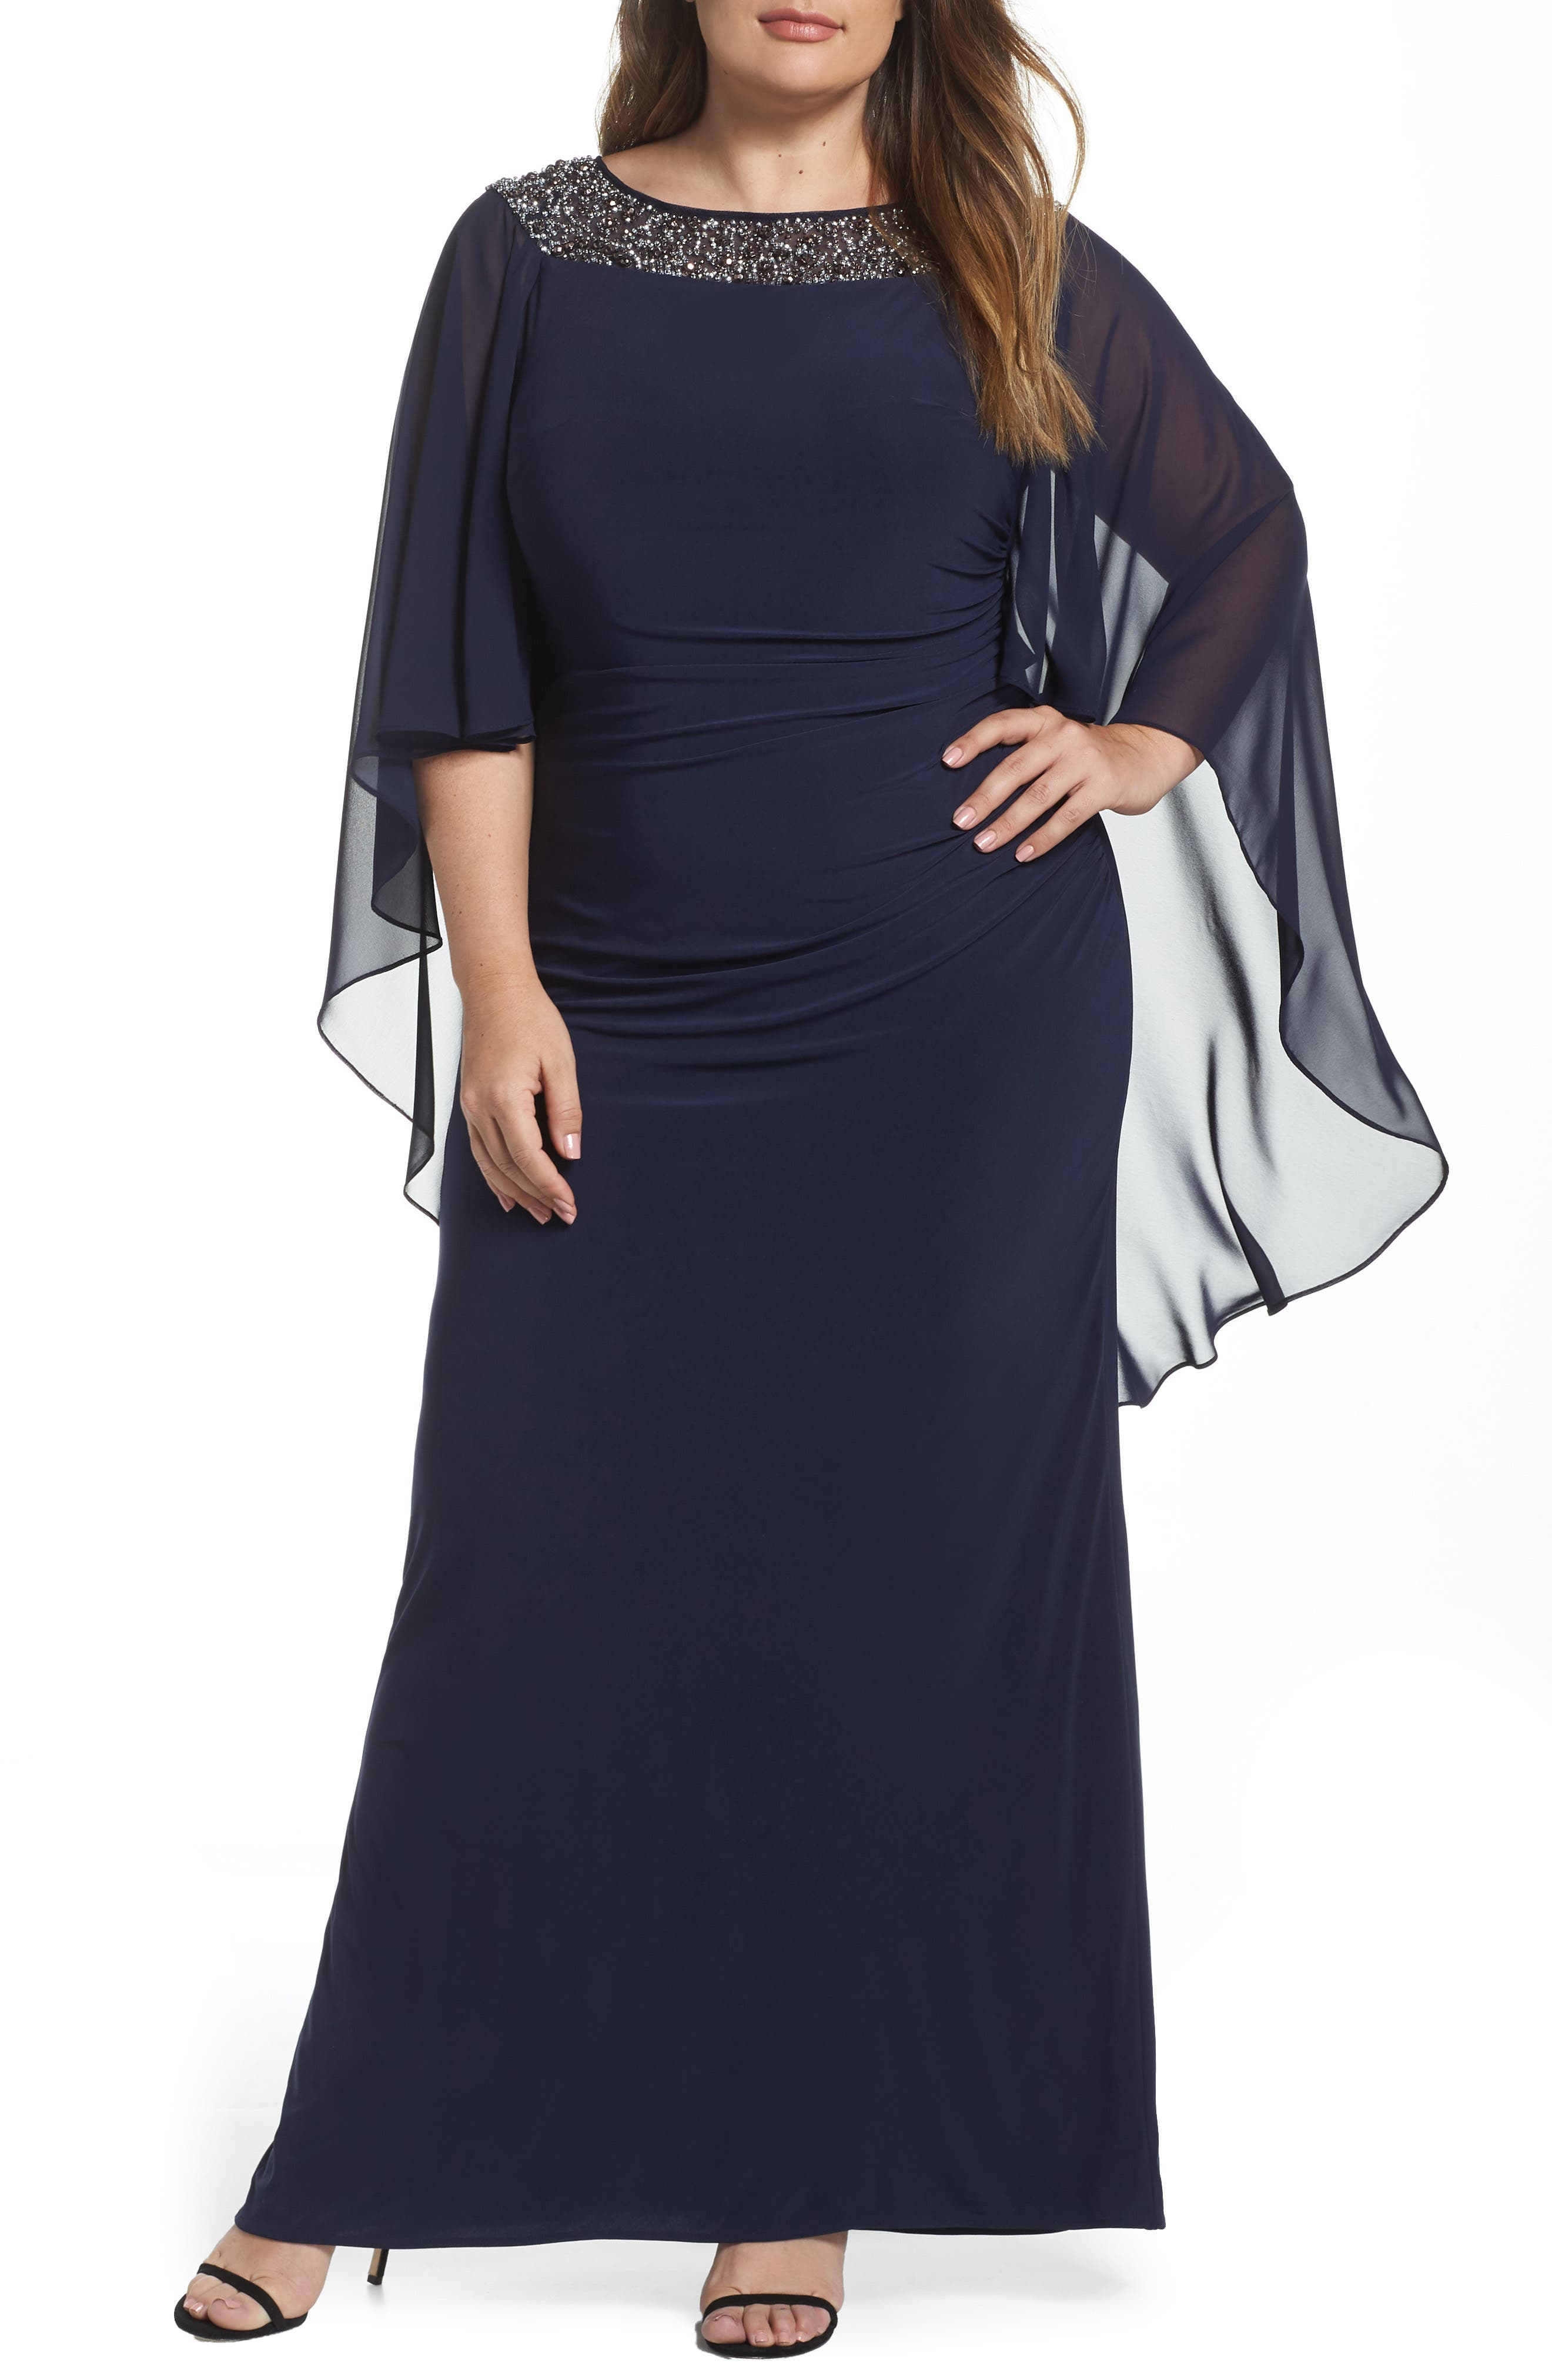 XSCAPE, Chiffon Cape Sleeve Beaded Neckline Gown, Main thumbnail 1, color, NAVY/ SILVER